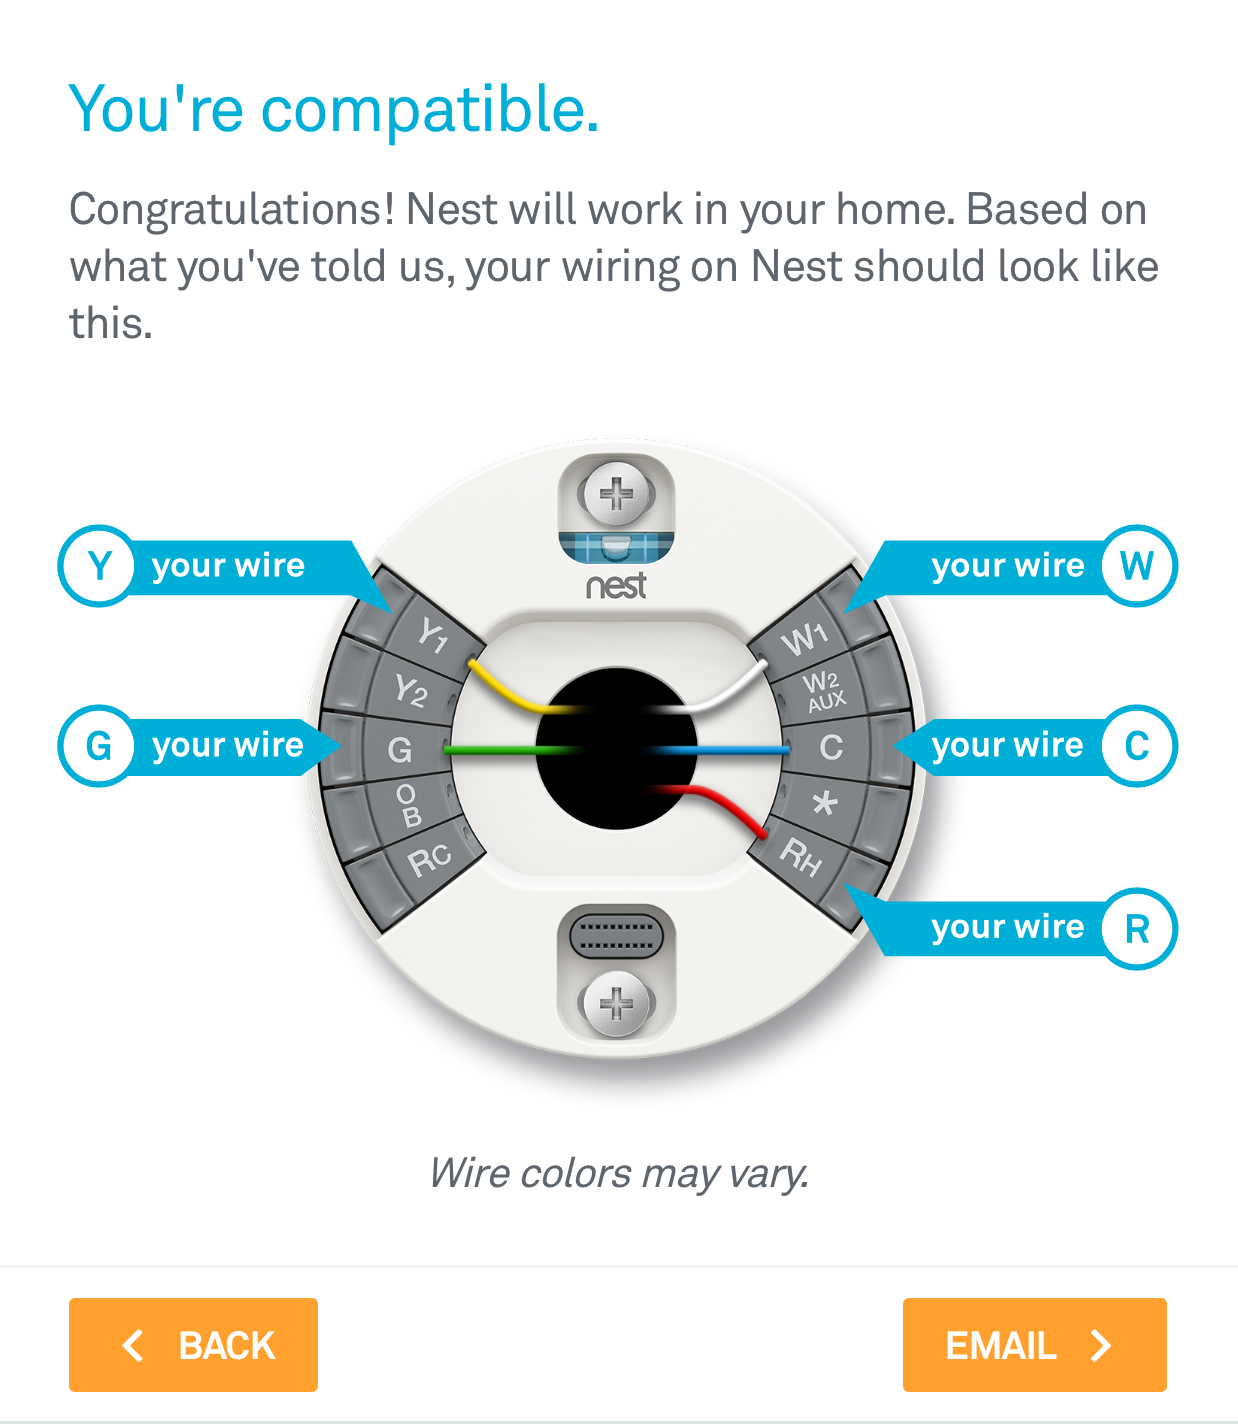 How To: Install The Nest Thermostat | The Craftsman Blog - 3Rd Generation Nest Thermostat Wiring Diagram